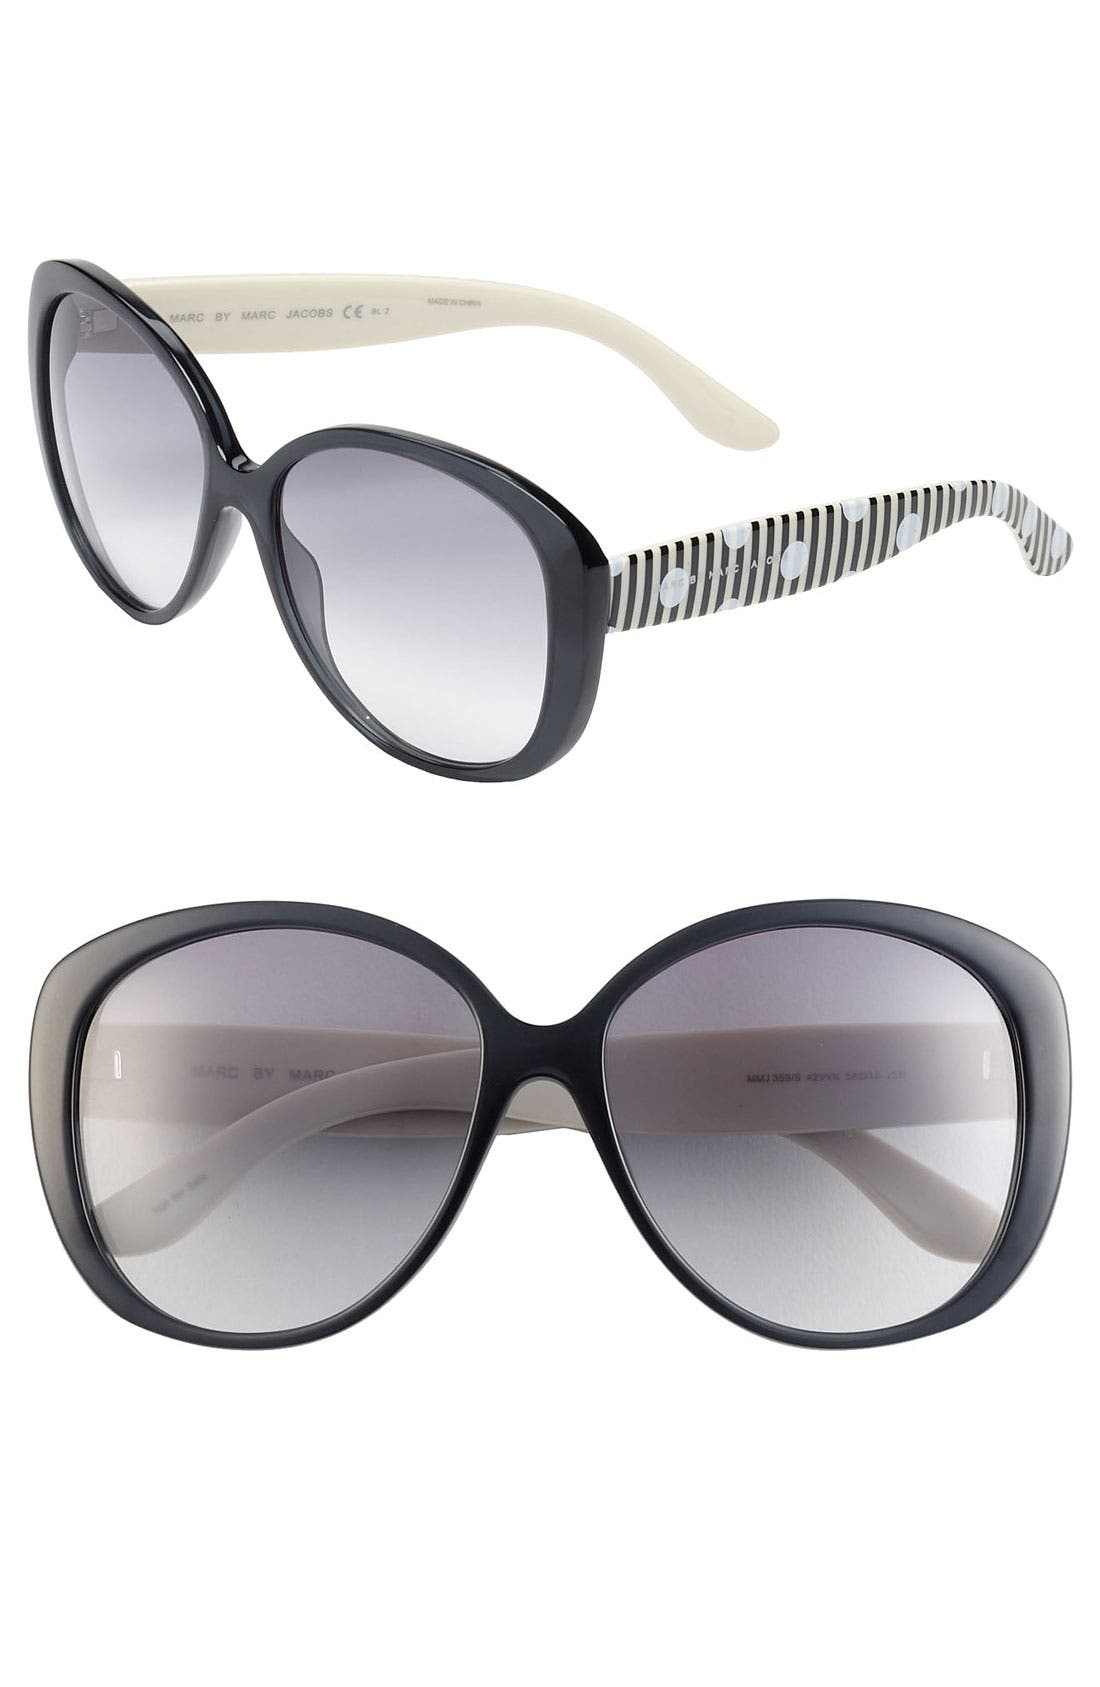 Main Image - MARC BY MARC JACOBS 58mm Oversized Retro Sunglasses